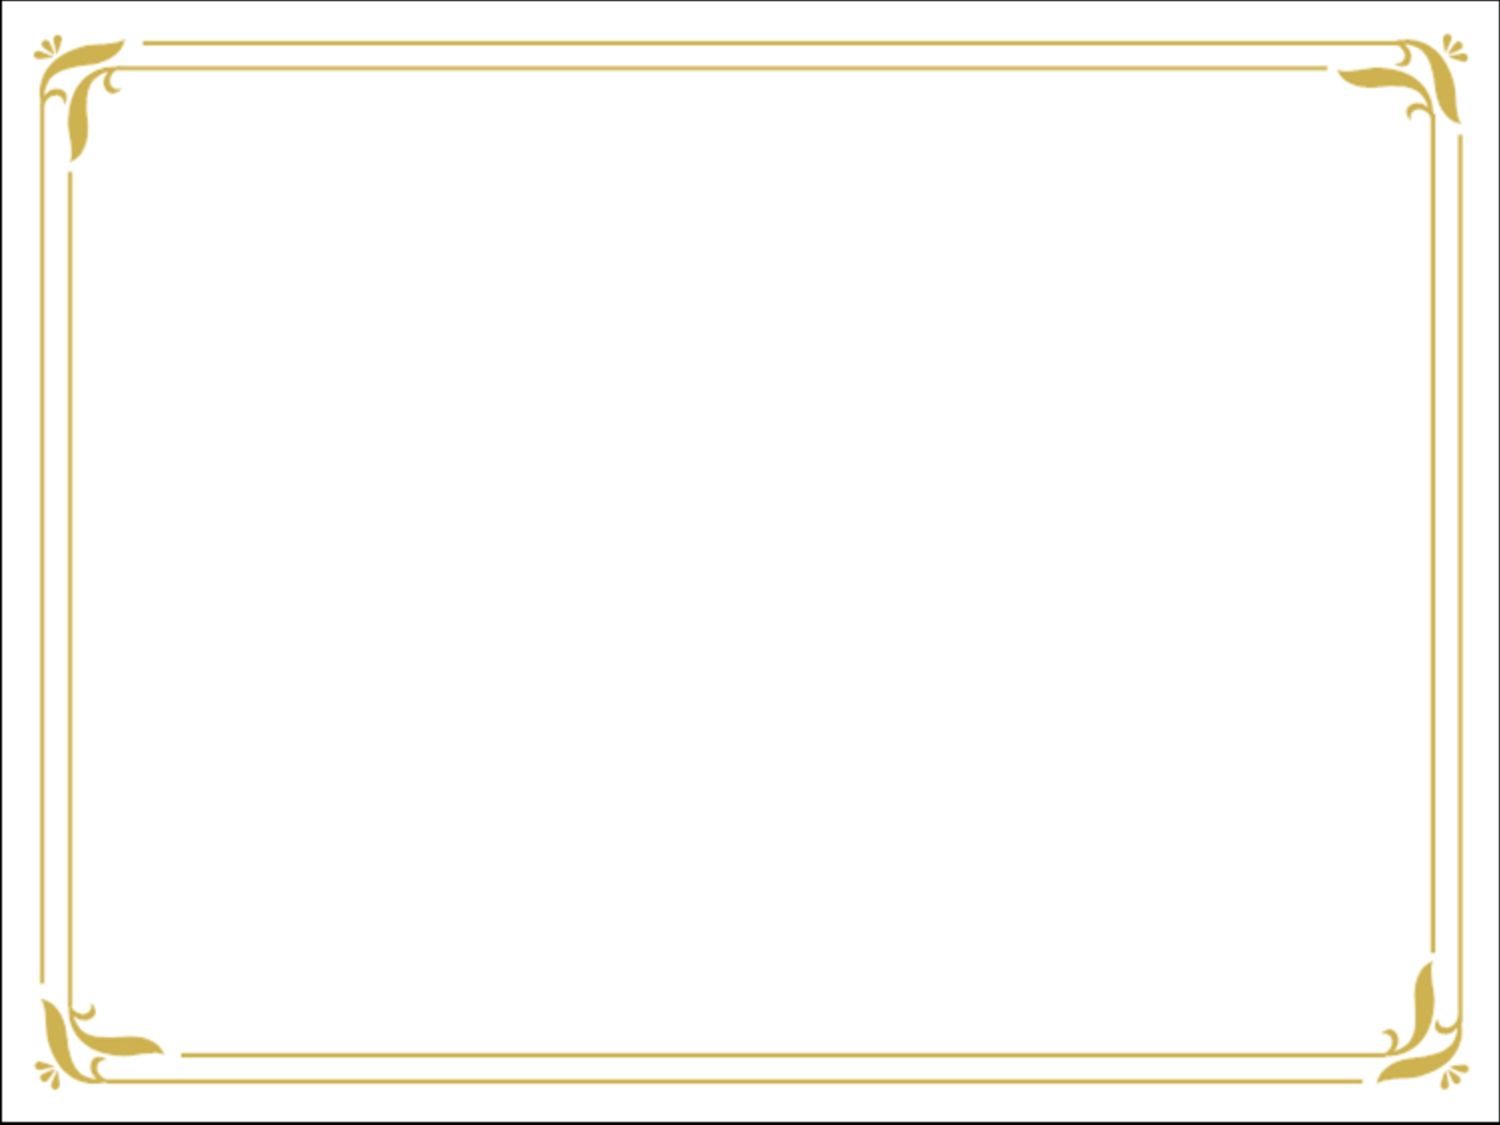 Download simple gold certificate border ppt template from the above download simple gold certificate border ppt template from the above resolutions if you don toneelgroepblik